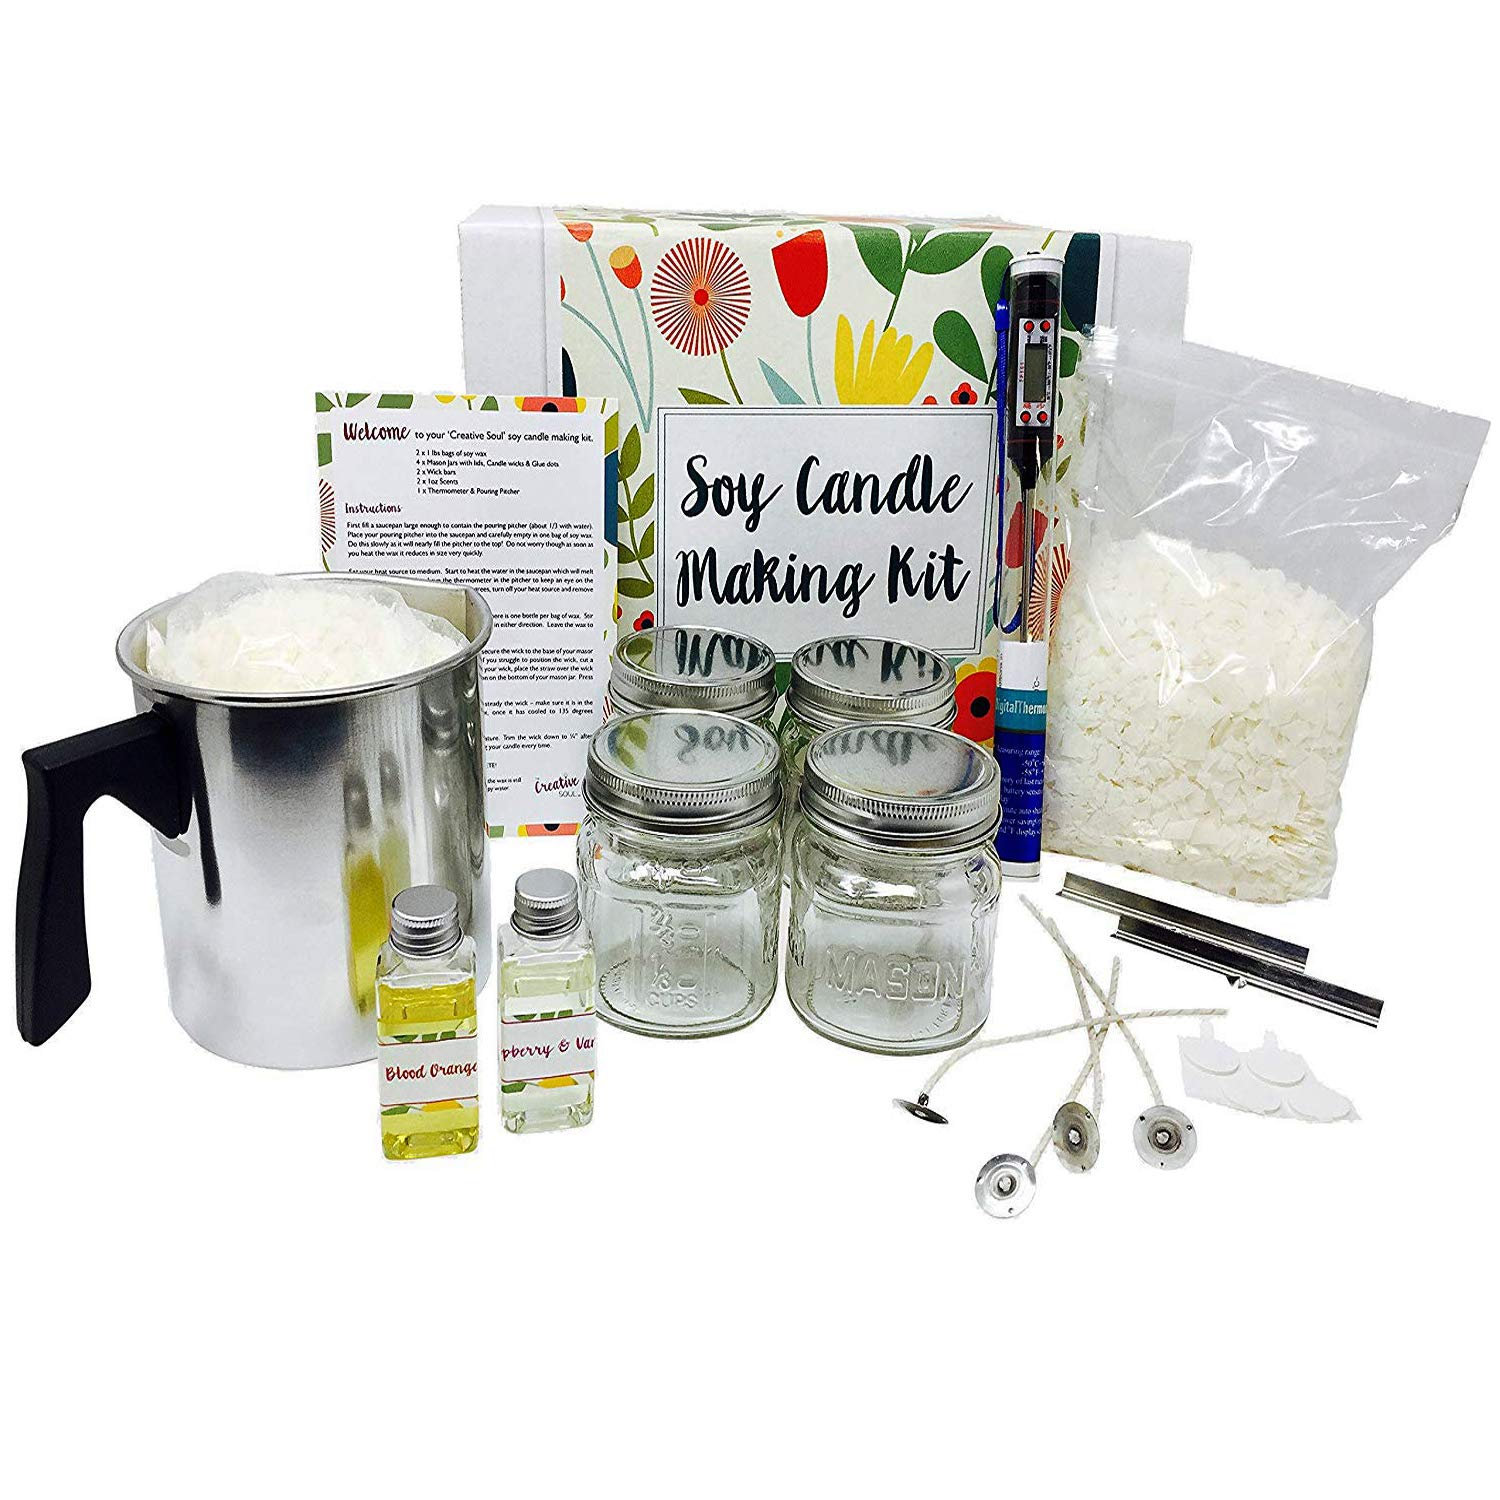 Complete Soy Candle Making Kit - Made with Eco Friendly Soy Wax - Makes 4 x 8 oz Scented Candles in Glass Mason Jars The Creative Soul Co